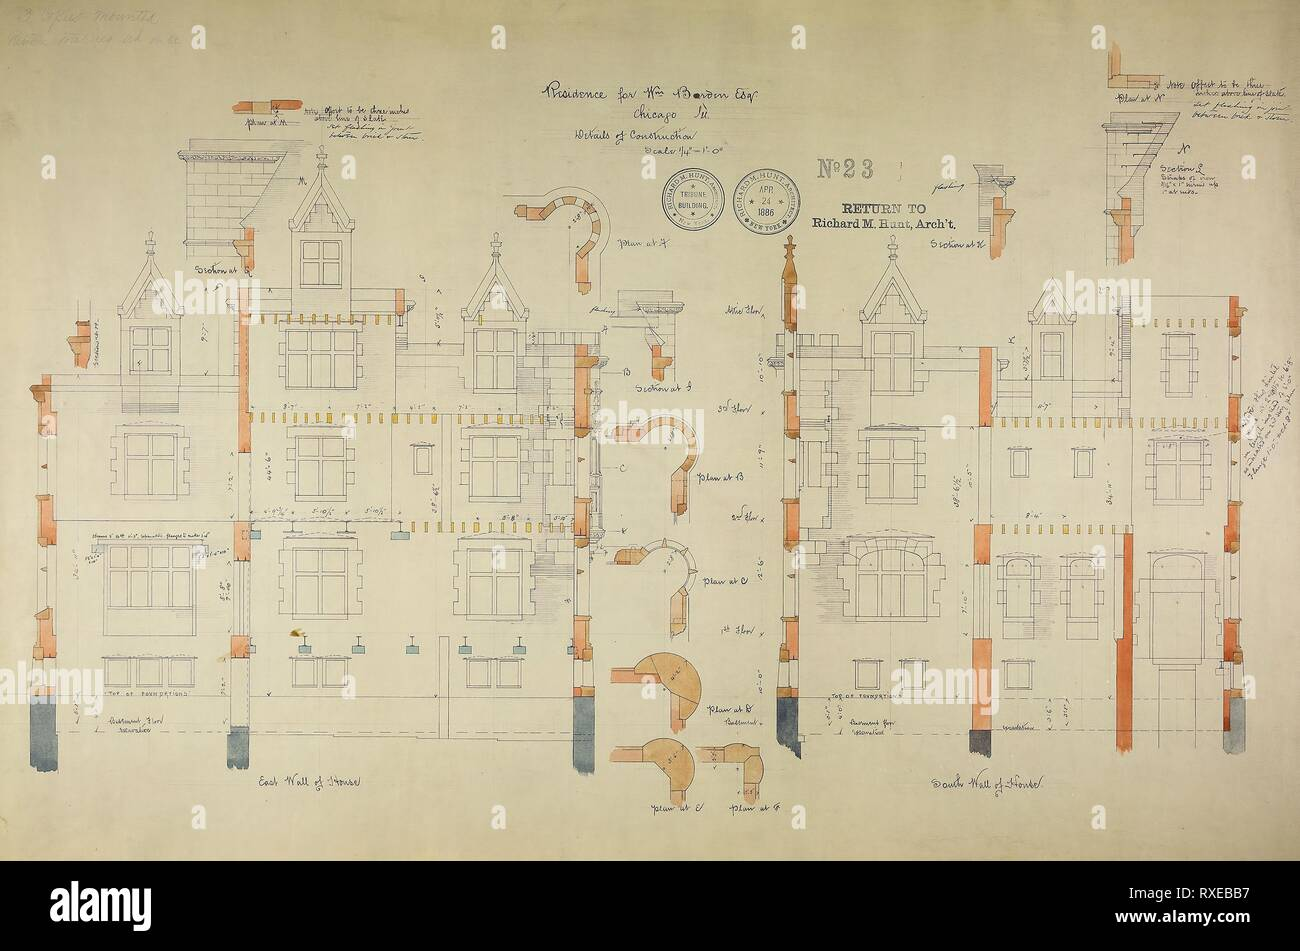 William Borden Residence, Chicago, Illinois, Construction Details. Richard Morris Hunt; American, 1827-1895. Date: 1885-1886. Dimensions: 58.6 × 95.1 cm (23 1/16 × 37 7/16 in.). Watercolor on hectographic print, mounted on linen. Origin: Chicago. Museum: The Chicago Art Institute. Stock Photo